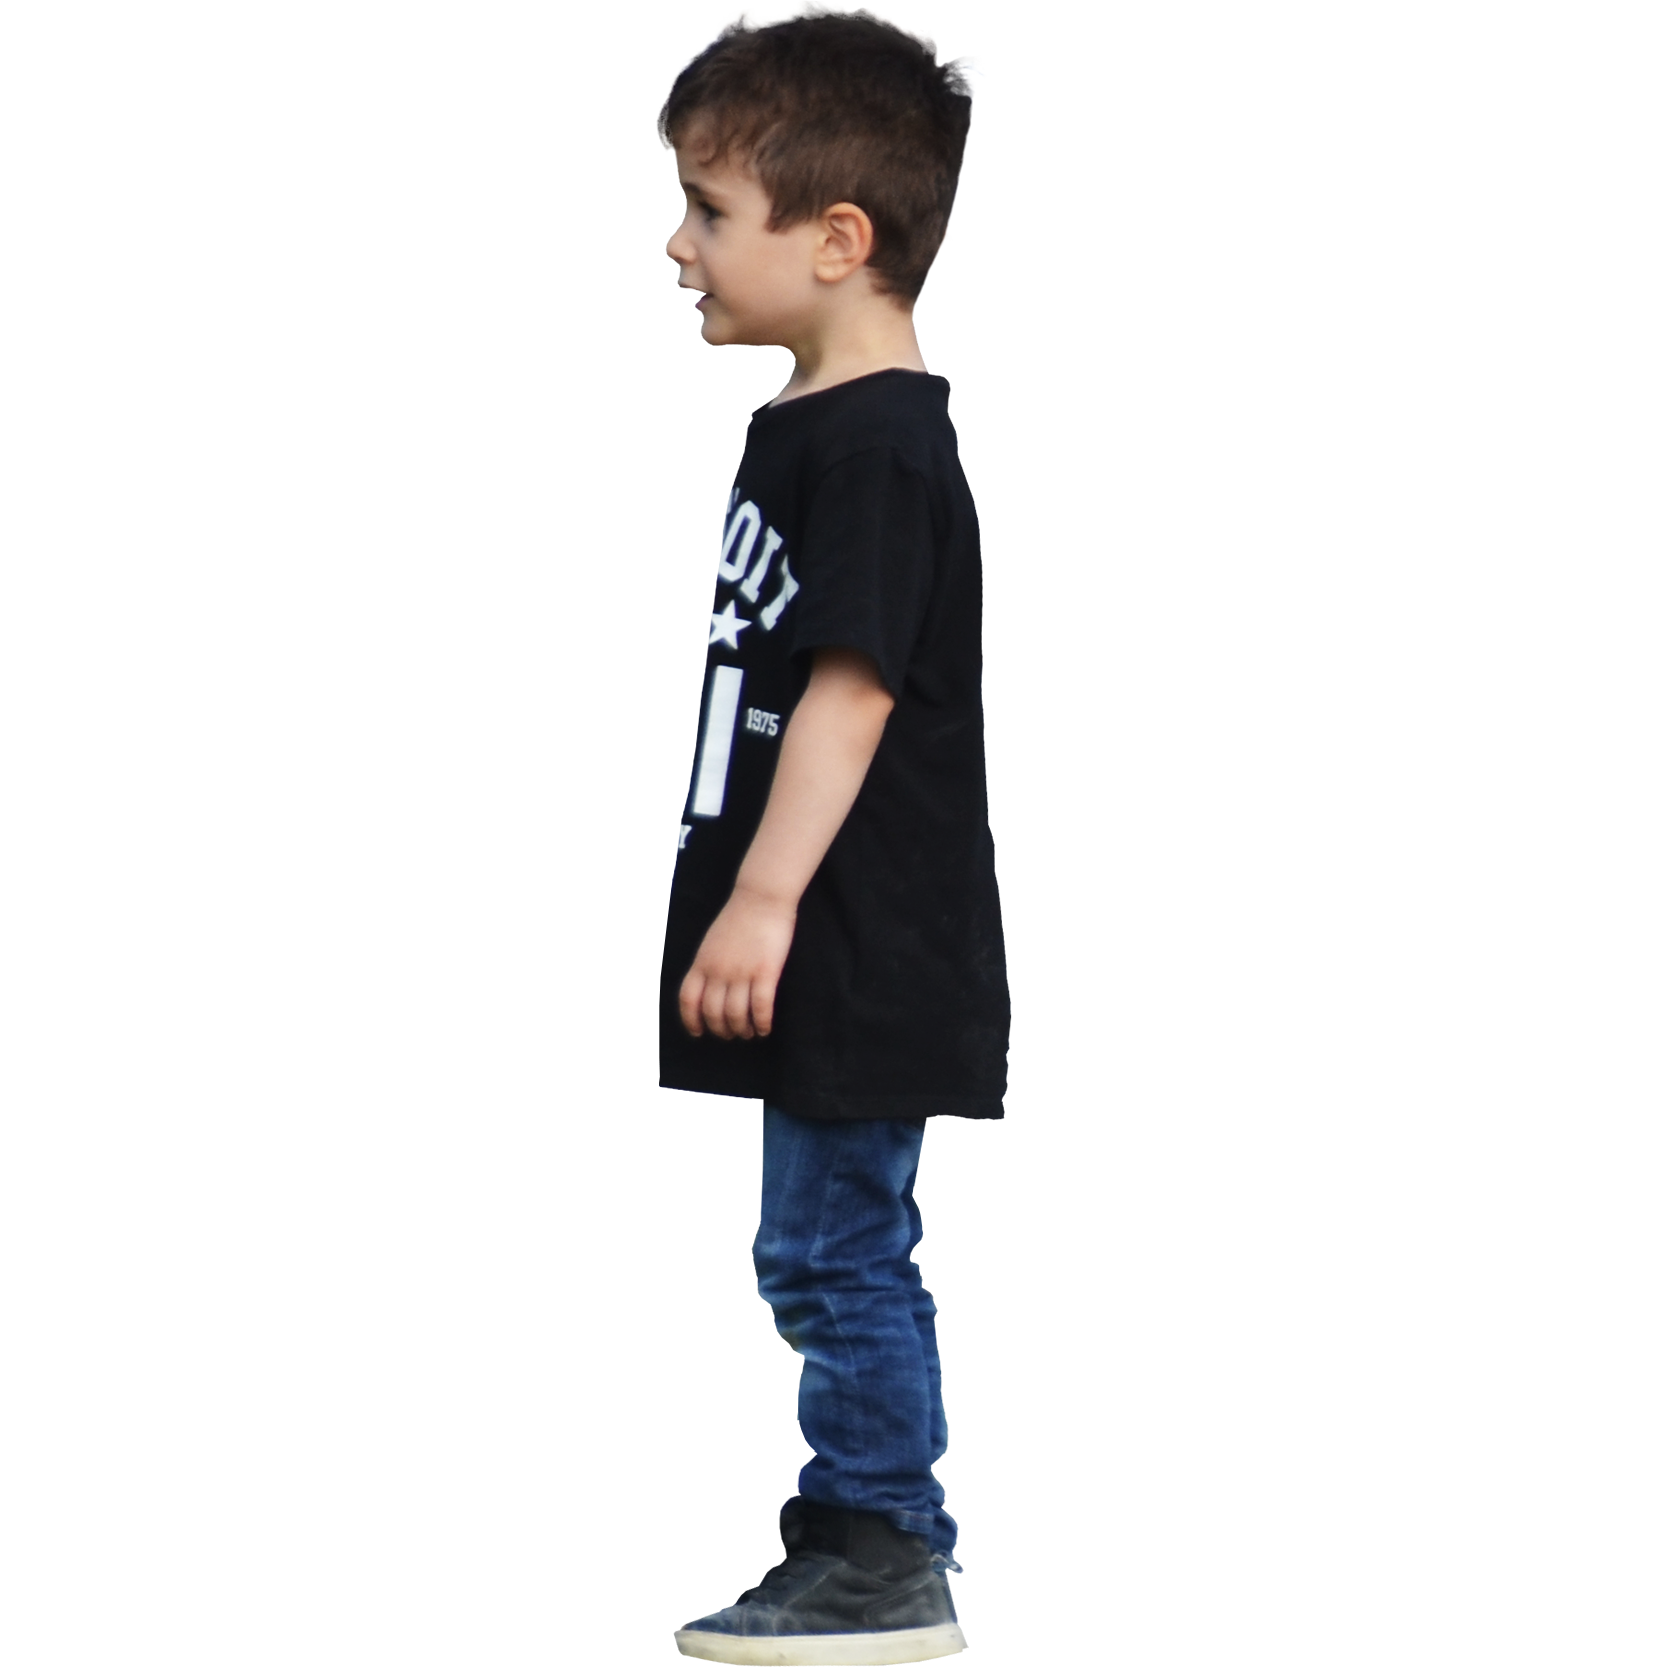 Kid standing png. Archibam sort by price